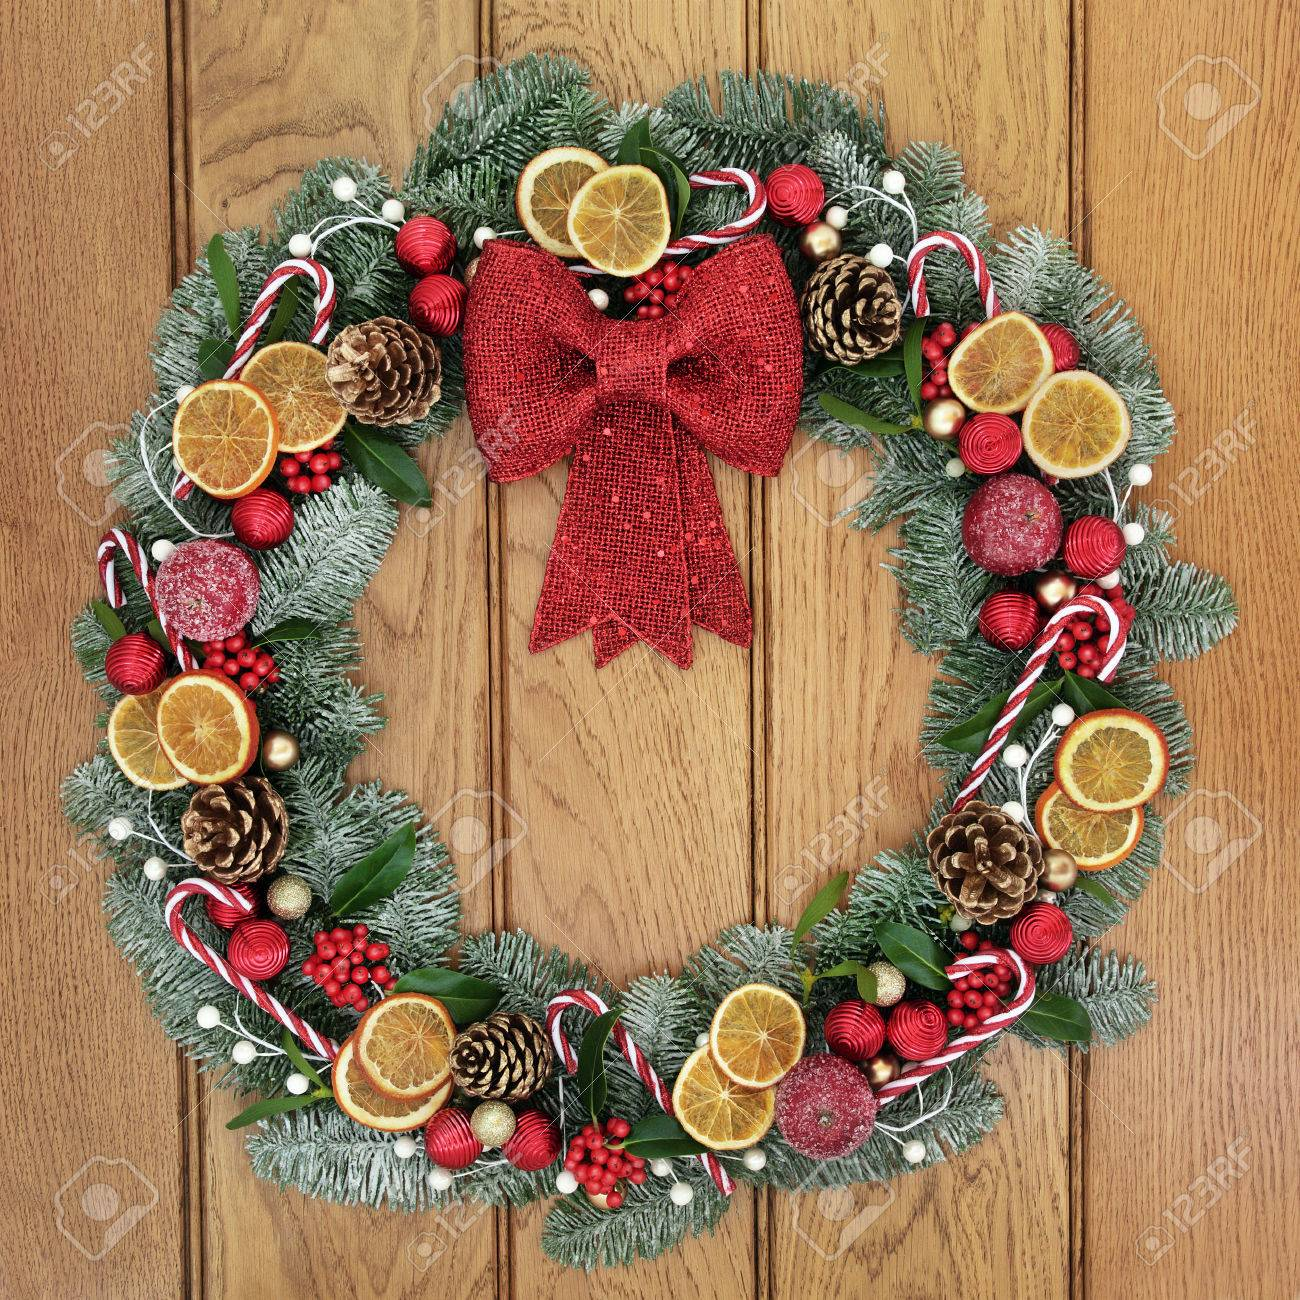 Christmas Wreath With Red Bow Decoration Dried Fruit Candy Stock Photo Picture And Royalty Free Image Image 63270156